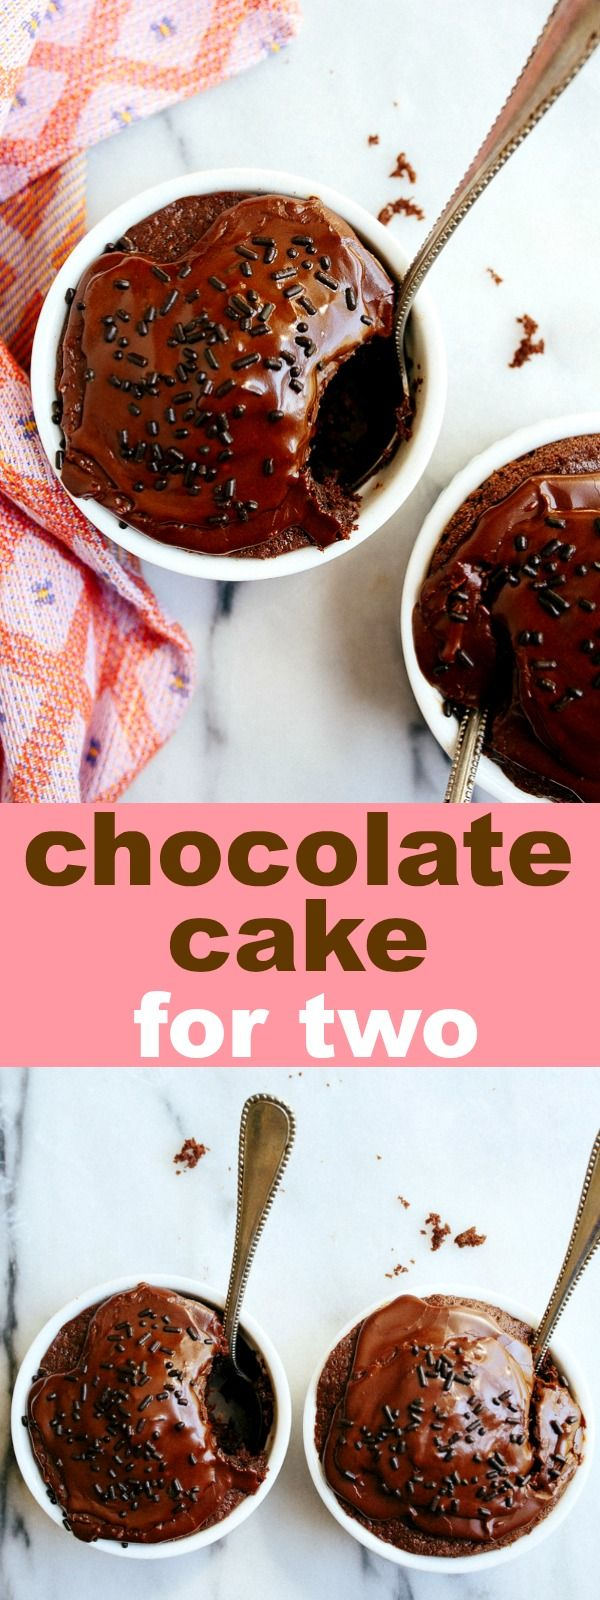 Mini chocolate cakes for two made in two ramekins. Cake baked in ramekins for two servings, the best chocolate dessert for two.